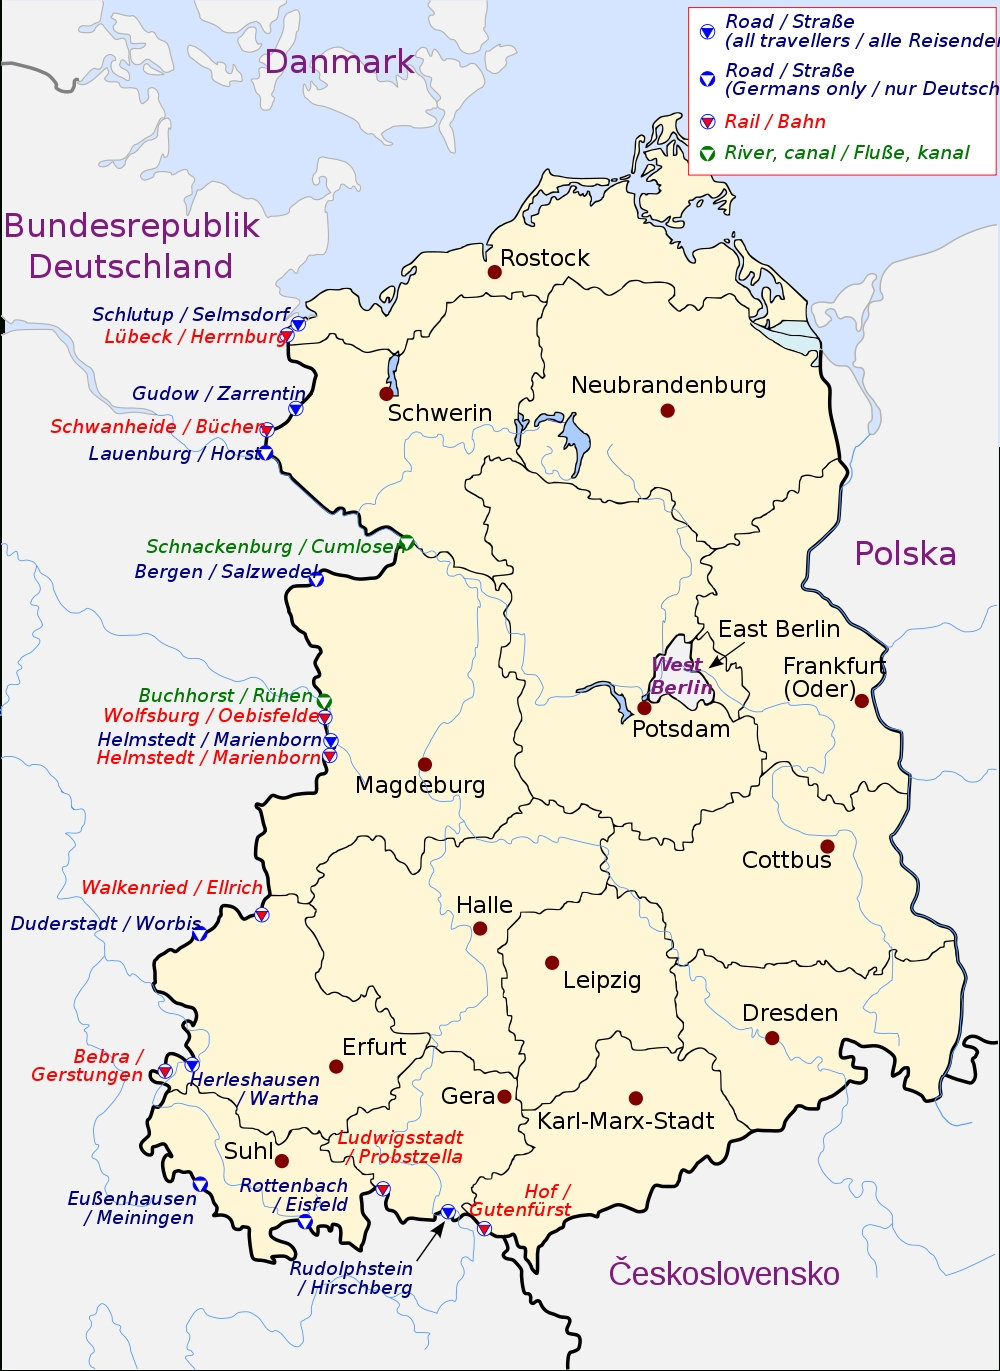 Crossing The Inner German Border - Wikipedia for Map Of East Germany Before 1989